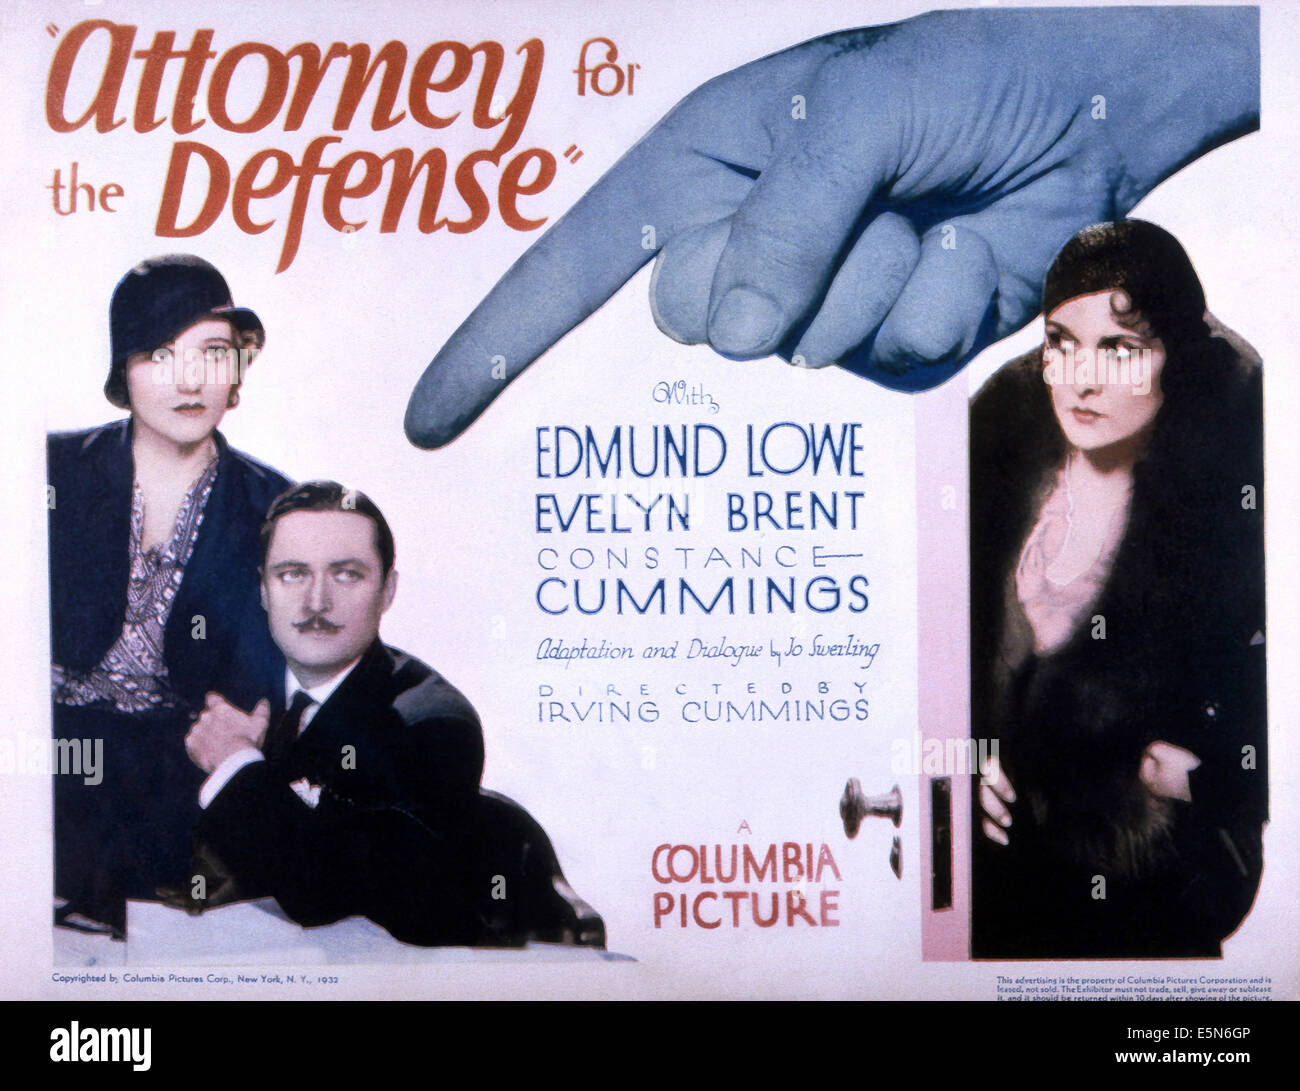 ATTORNEY FOR THE DEFENSE, from left: Constance Cummings, Edmund Lowe, Evelyn Brent, 1932 - Stock Image